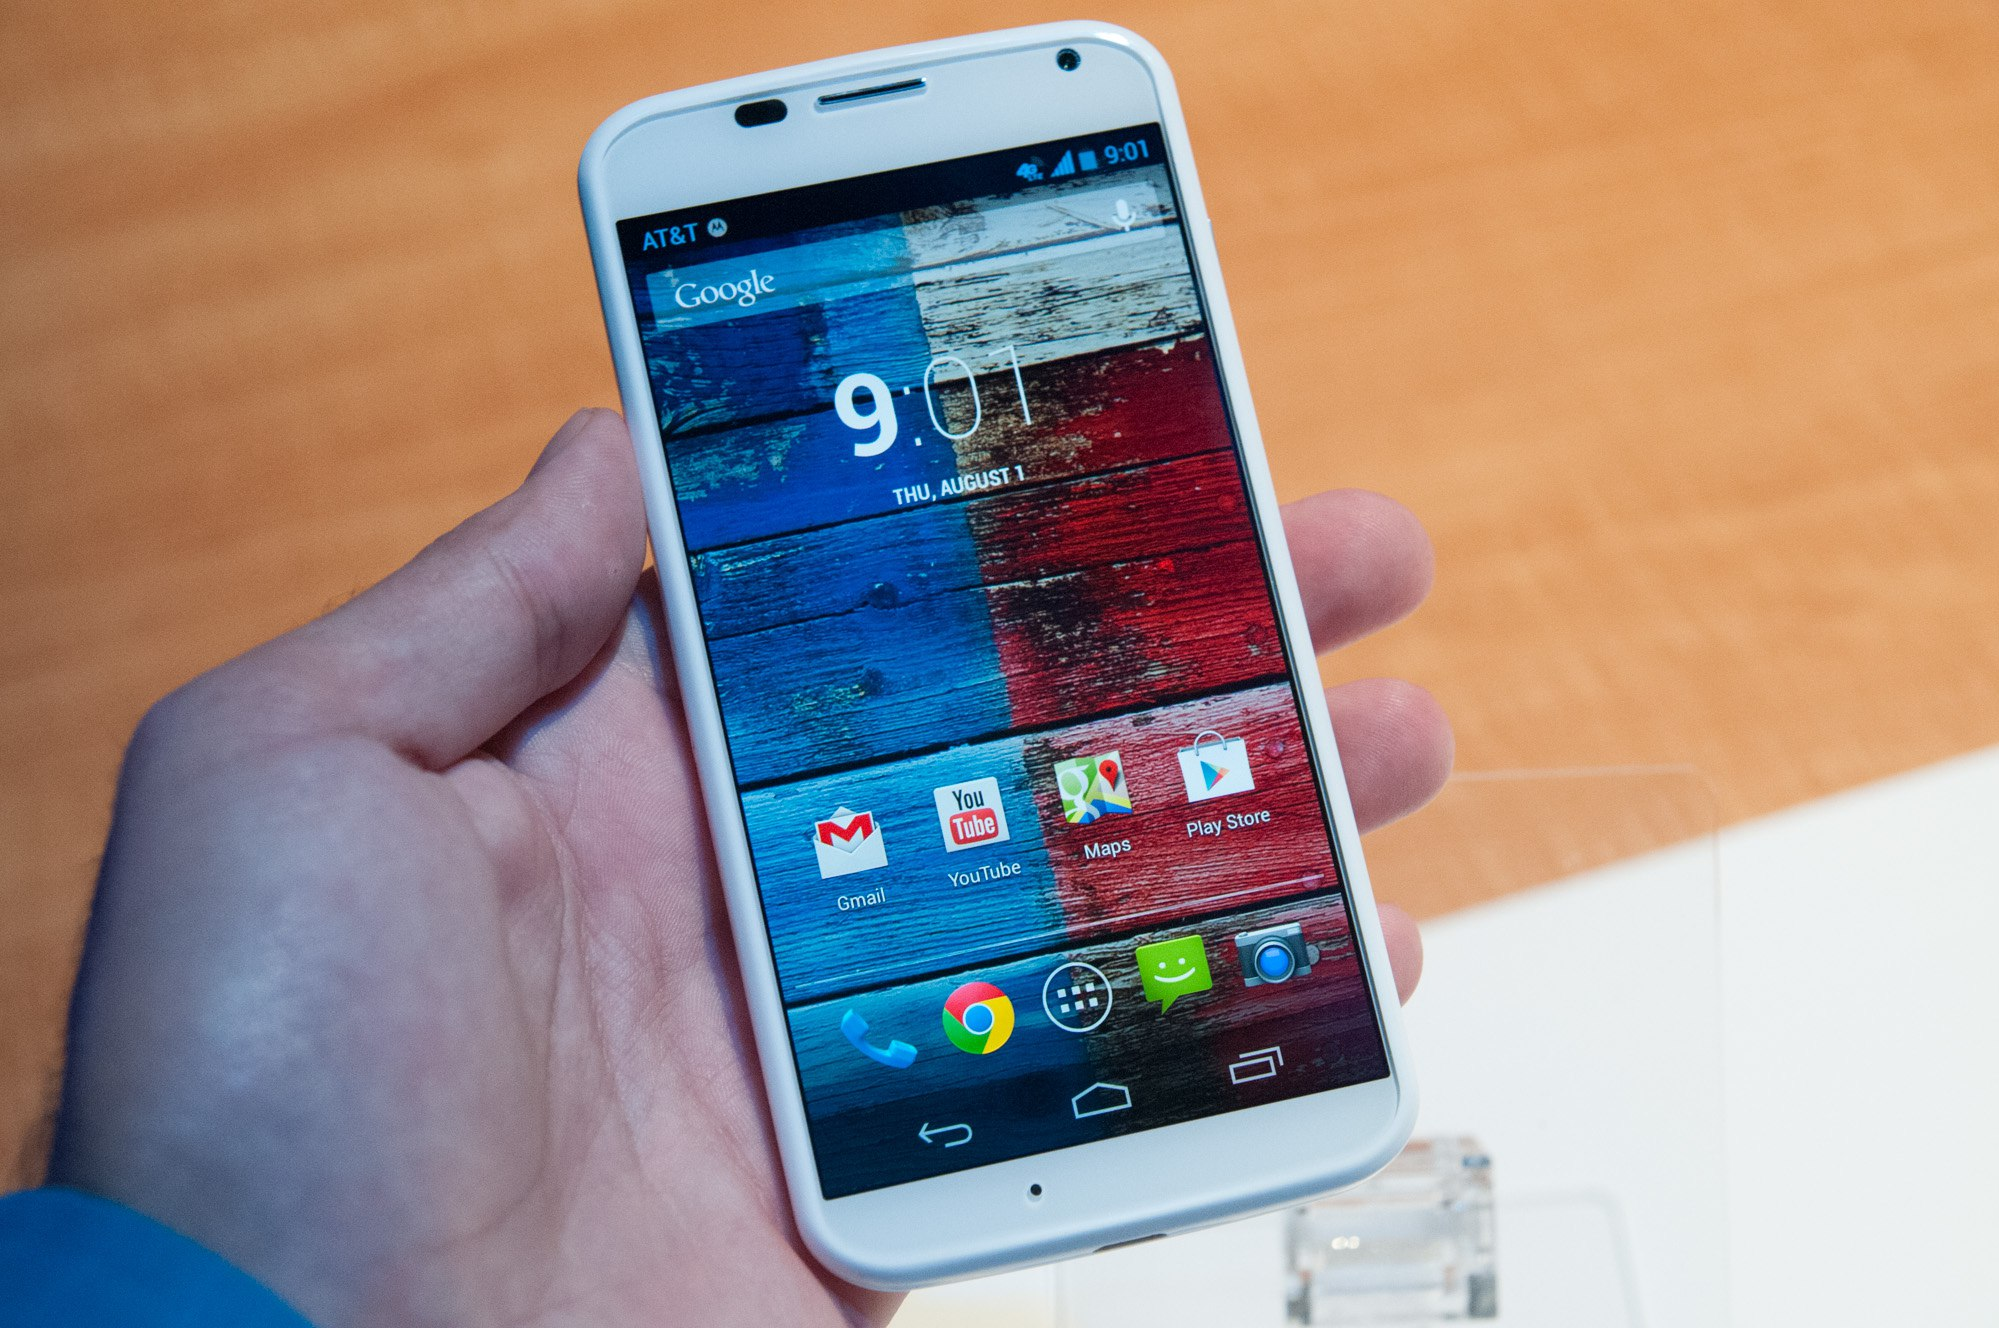 How to Root the Motorola Moto X on Android 5.0